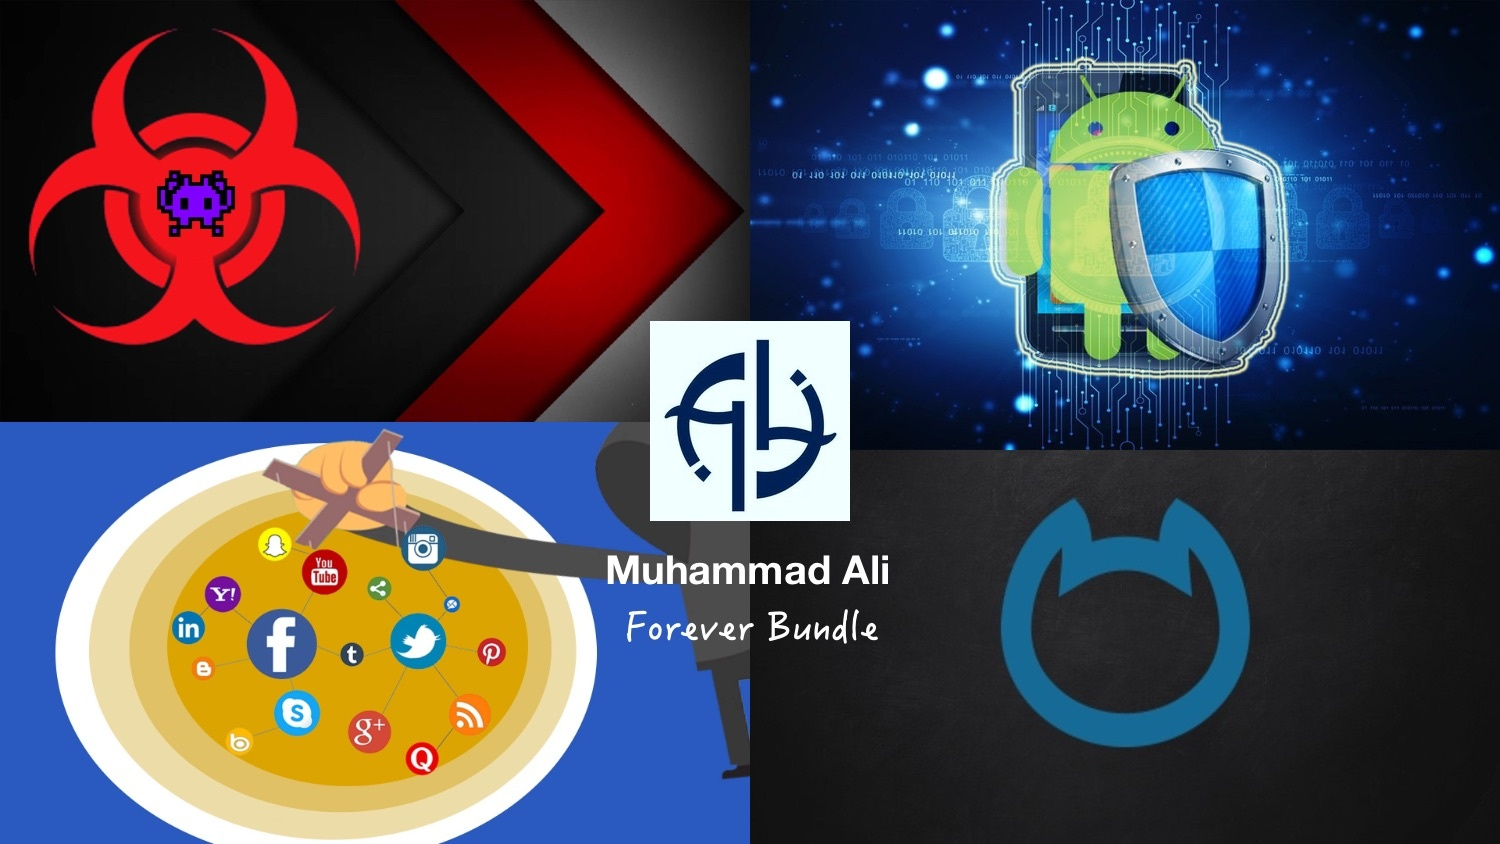 Muhammad Ali Forever All Course Bundle